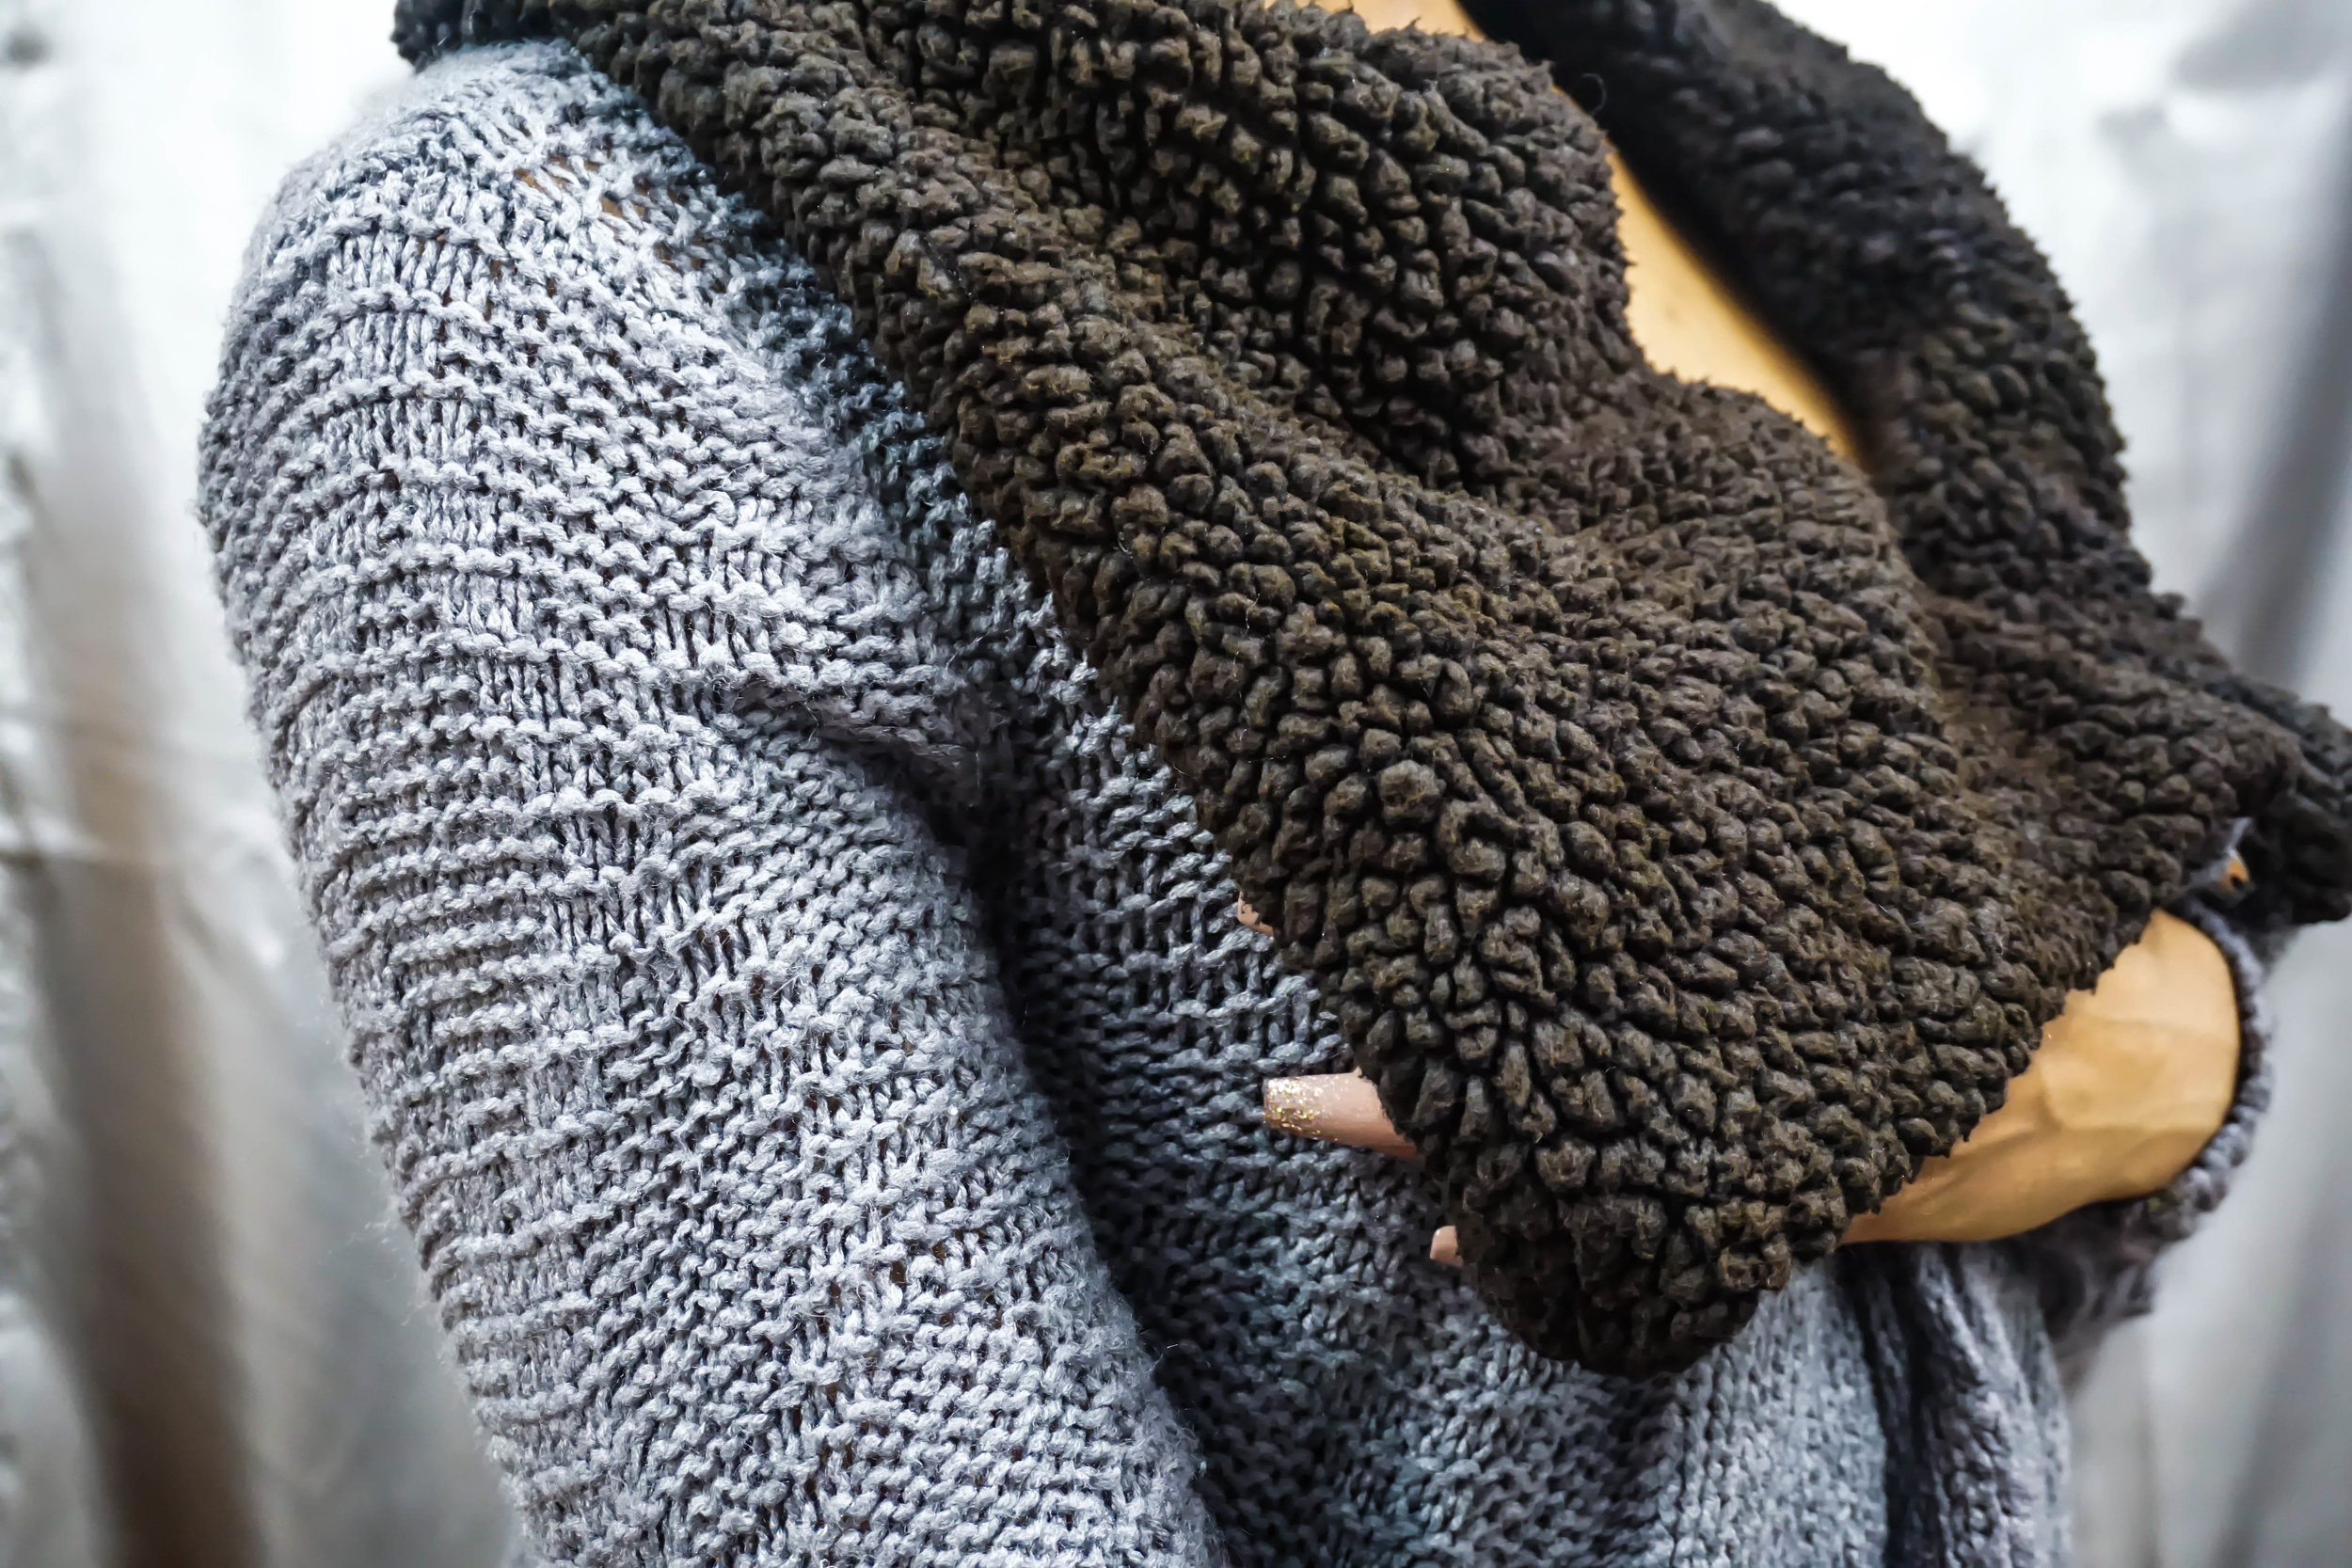 If you look closely, you can see that the dye came out a tad bit uneven. You have to look hard enough! One part of the sweater (the polyester) took really well to the dye, but body (the acrylic) looks more gray than anything. Supposedly, acid dyes work better on acrylic materials.